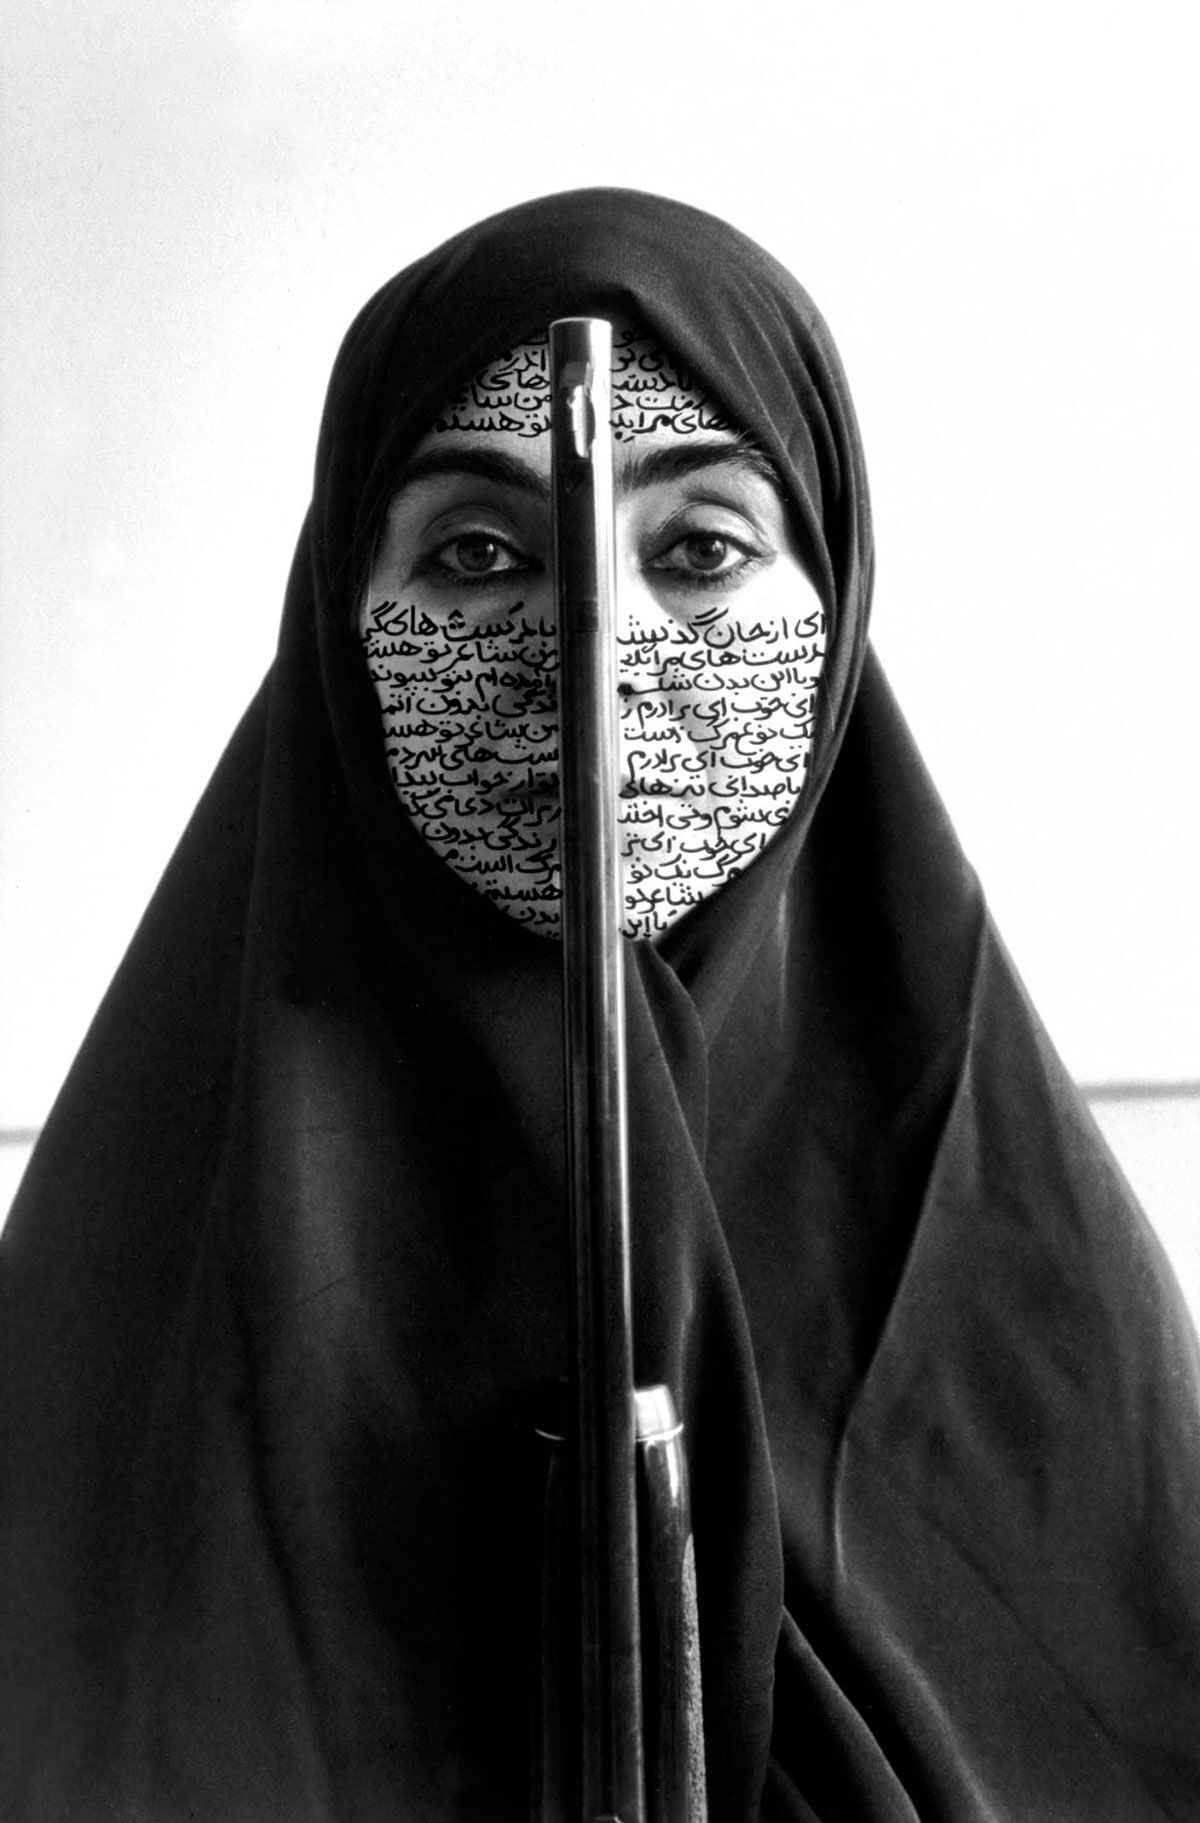 Shirin Neshat, Rebellious Silence, 1994. © Shirin Neshat. Photo by Cynthia Preston. Courtesy of the artist and Gladstone Gallery, New York and Brussels.